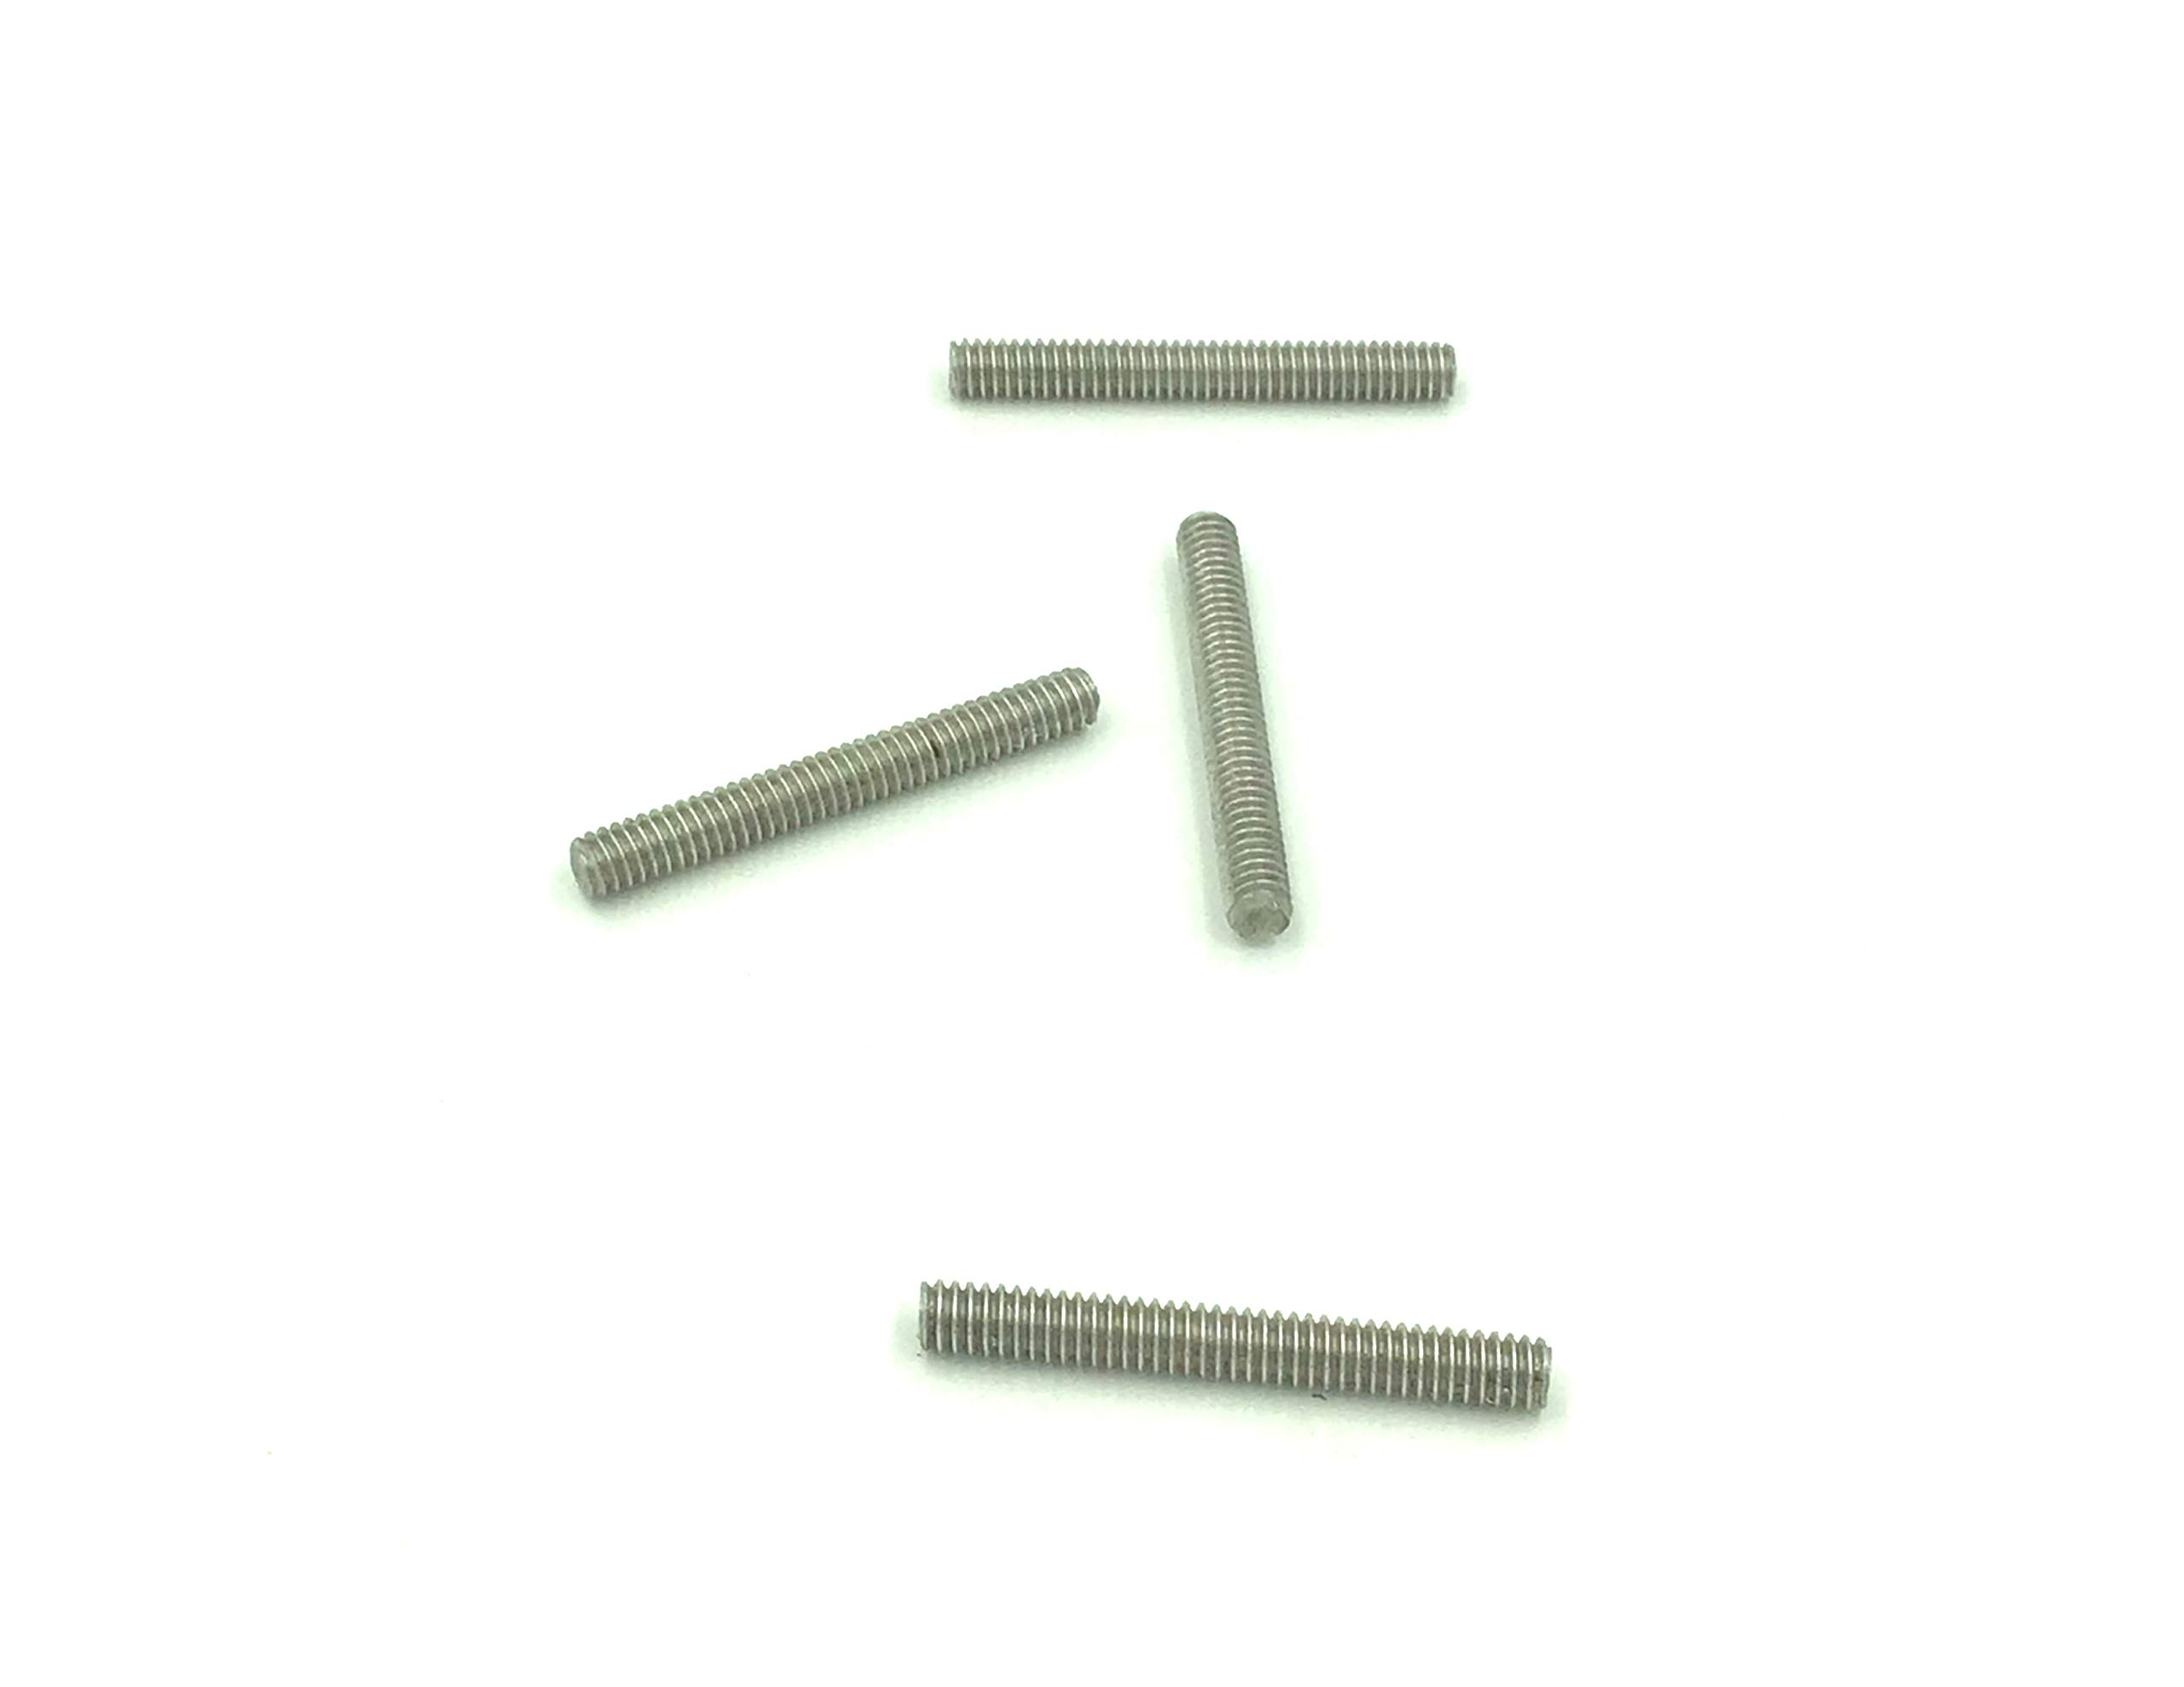 1/4-20 Full Thread Stud Aluminum (50, 1/4''-20 x 12'') by Generic (Image #1)